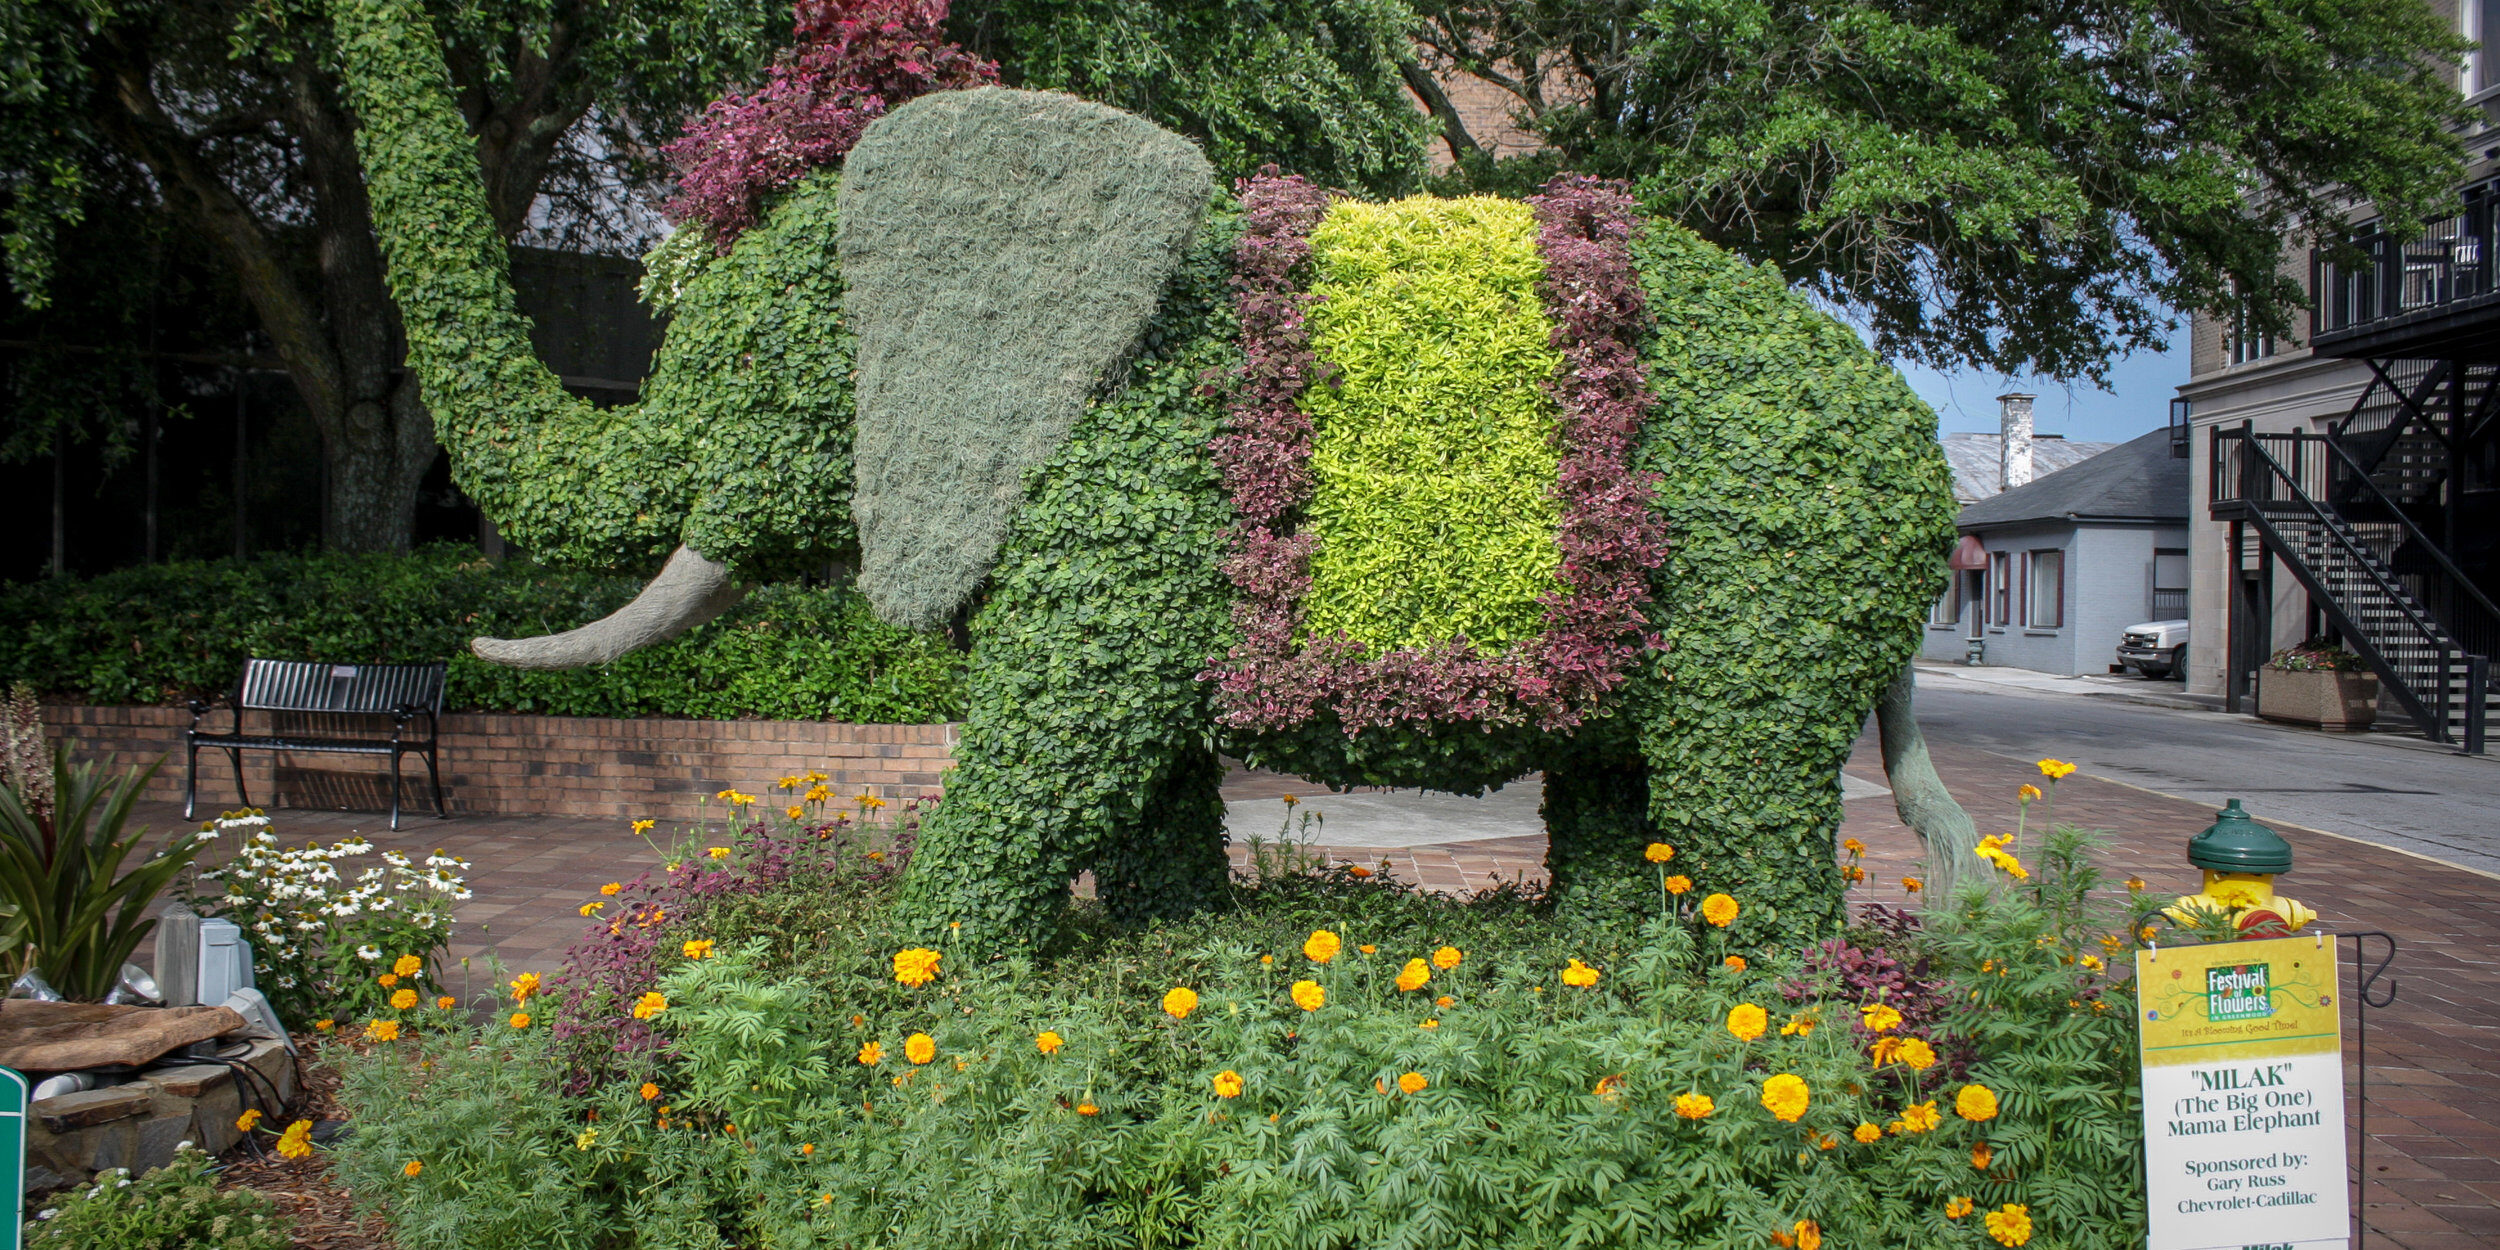 SOUTH CAROLINA OLD 96 DISTRICT TOURISM – Festival of Flowers